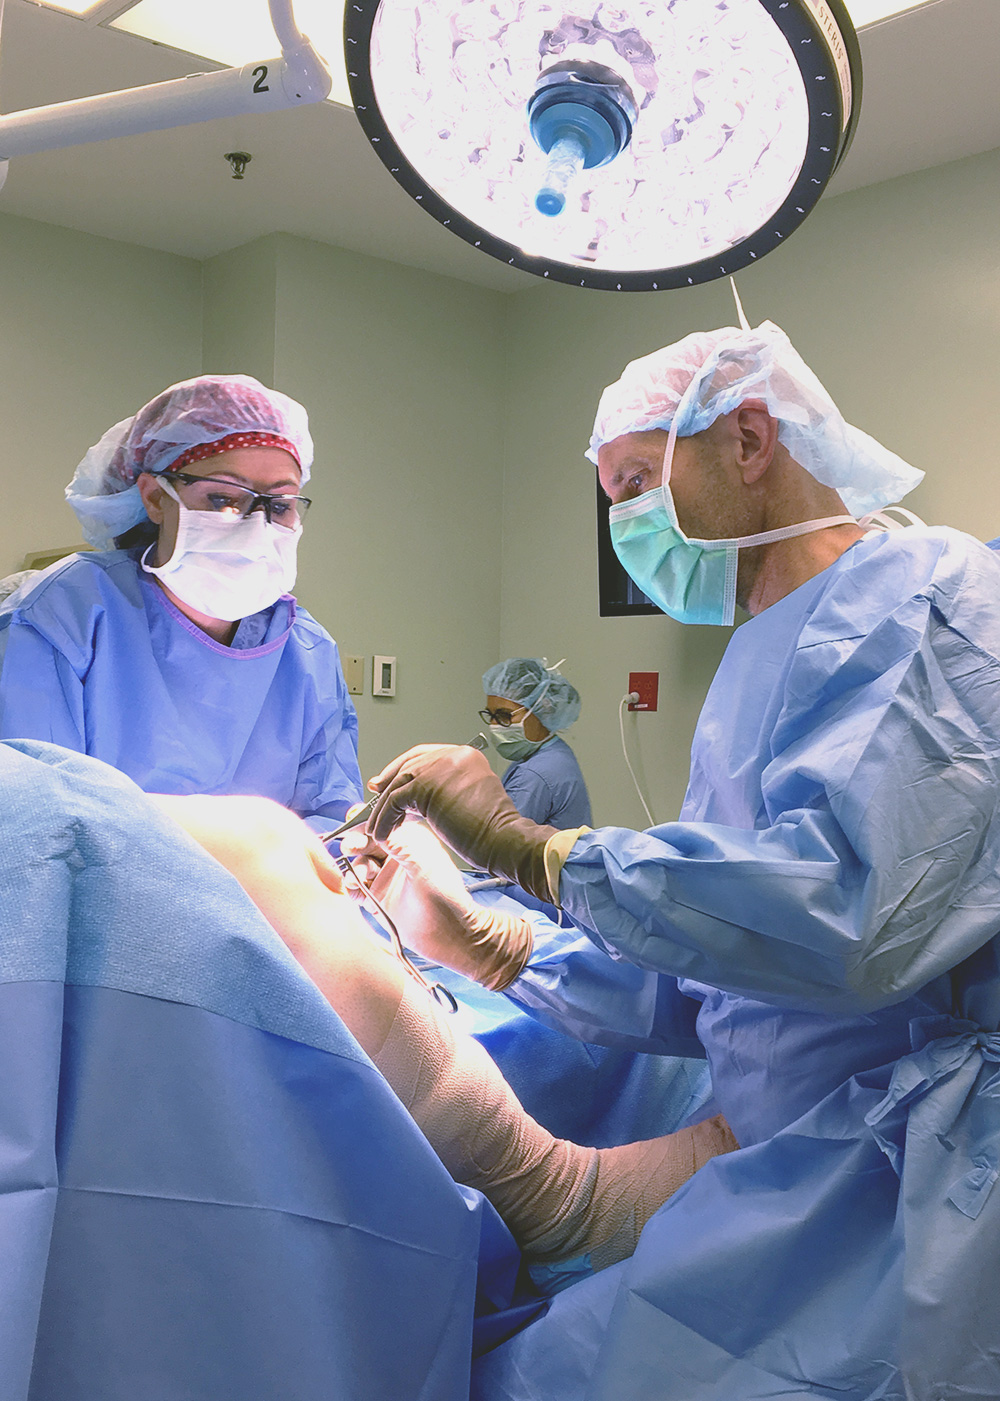 an introduction to the career of orthopedic surgeons Orthopedic surgeon: career info & requirements orthopedic surgeons require a significant amount of formal education learn about the education, job duties and licensure requirements to see if this.